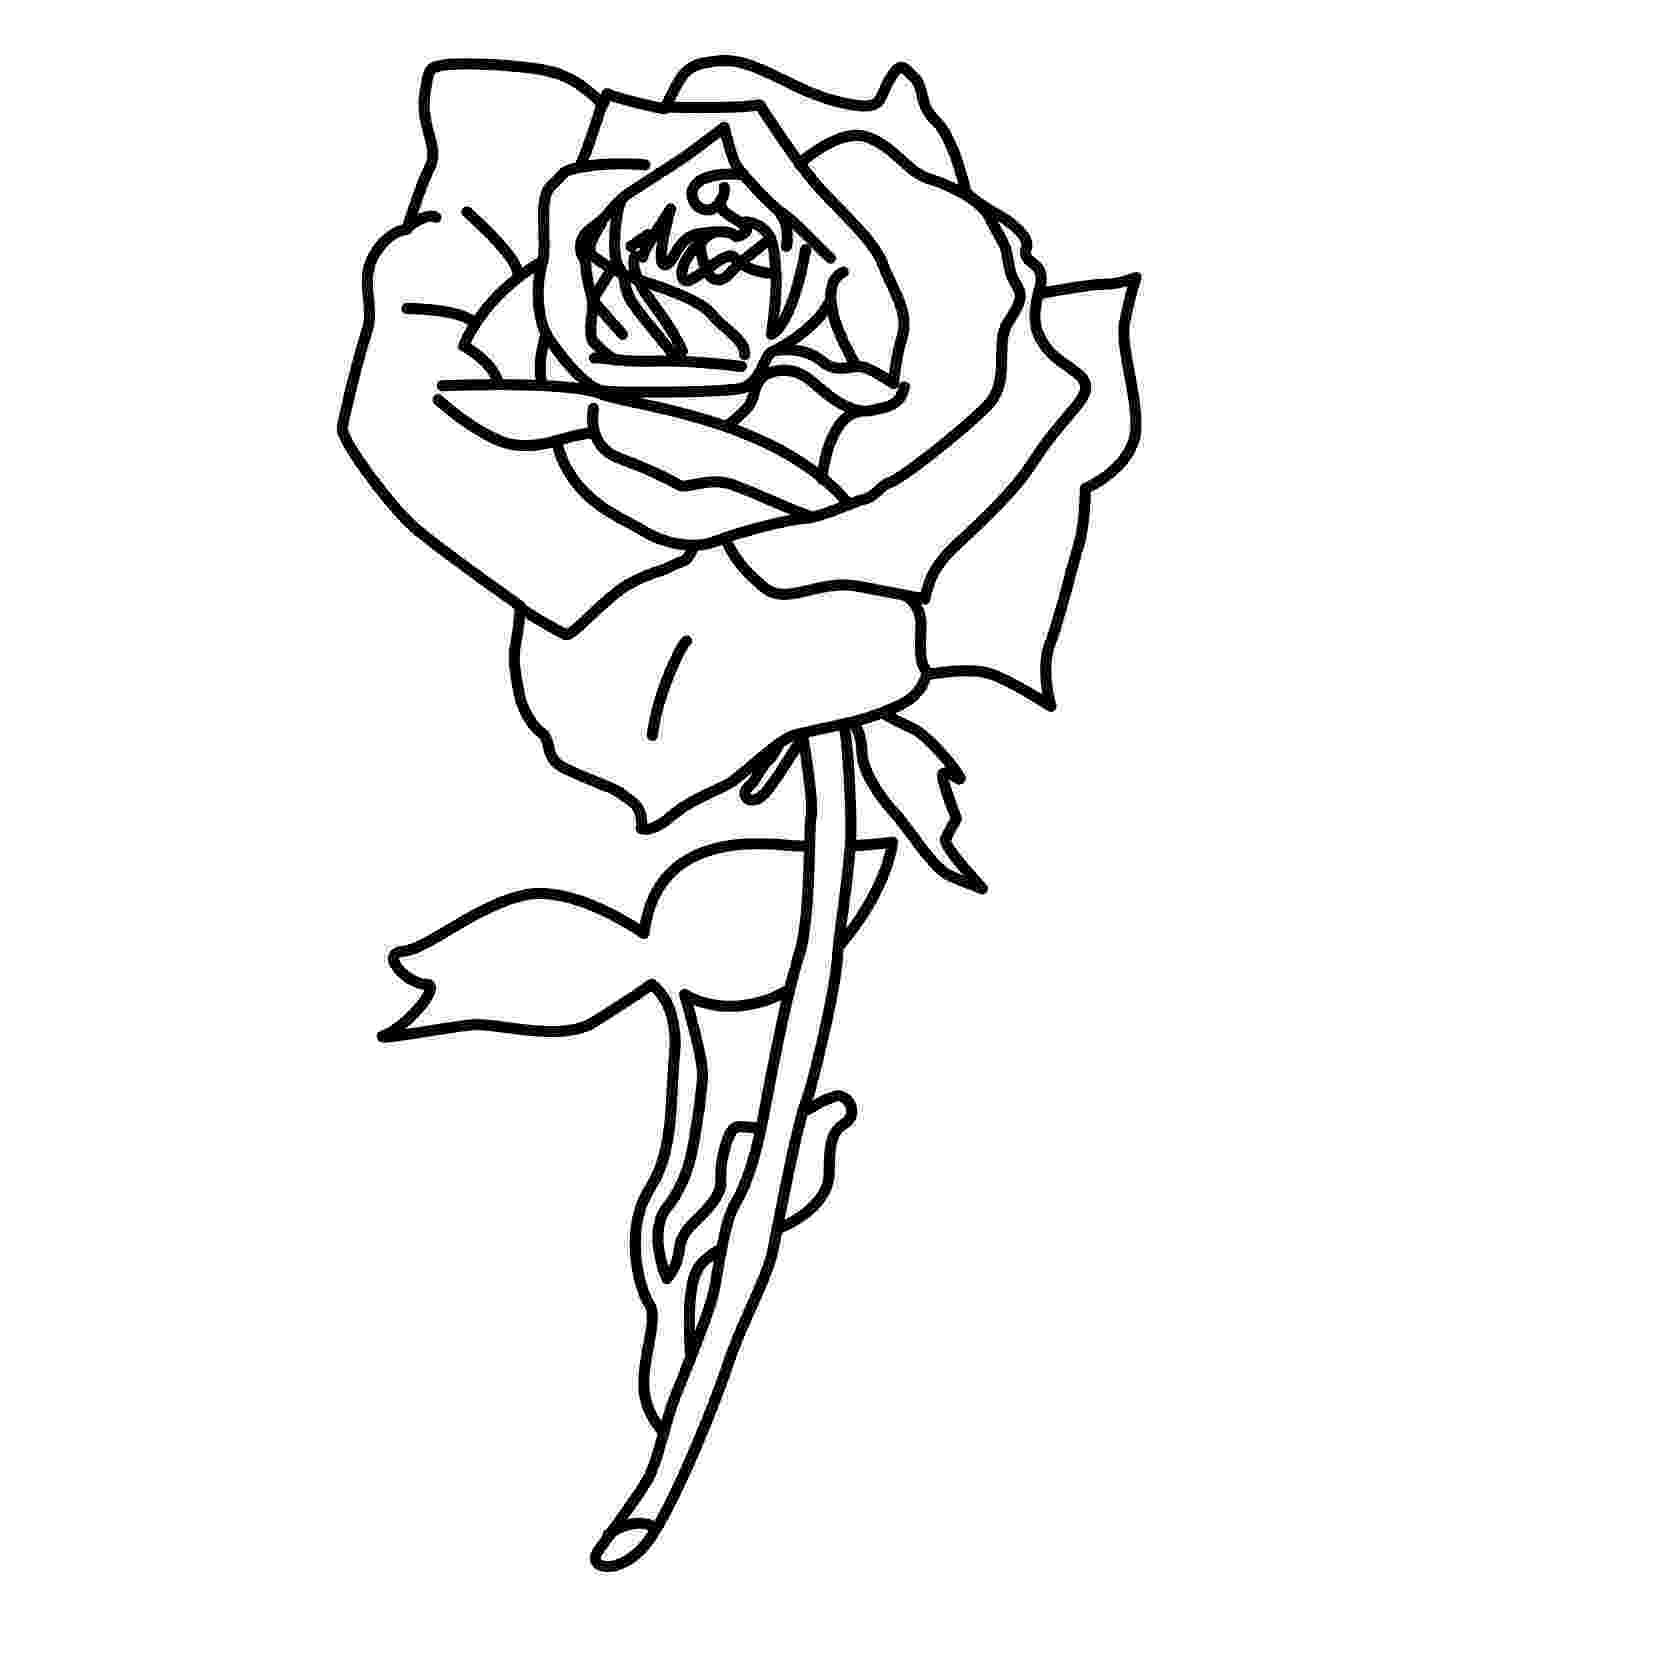 colouring pictures of roses free printable roses coloring pages for kids roses colouring of pictures